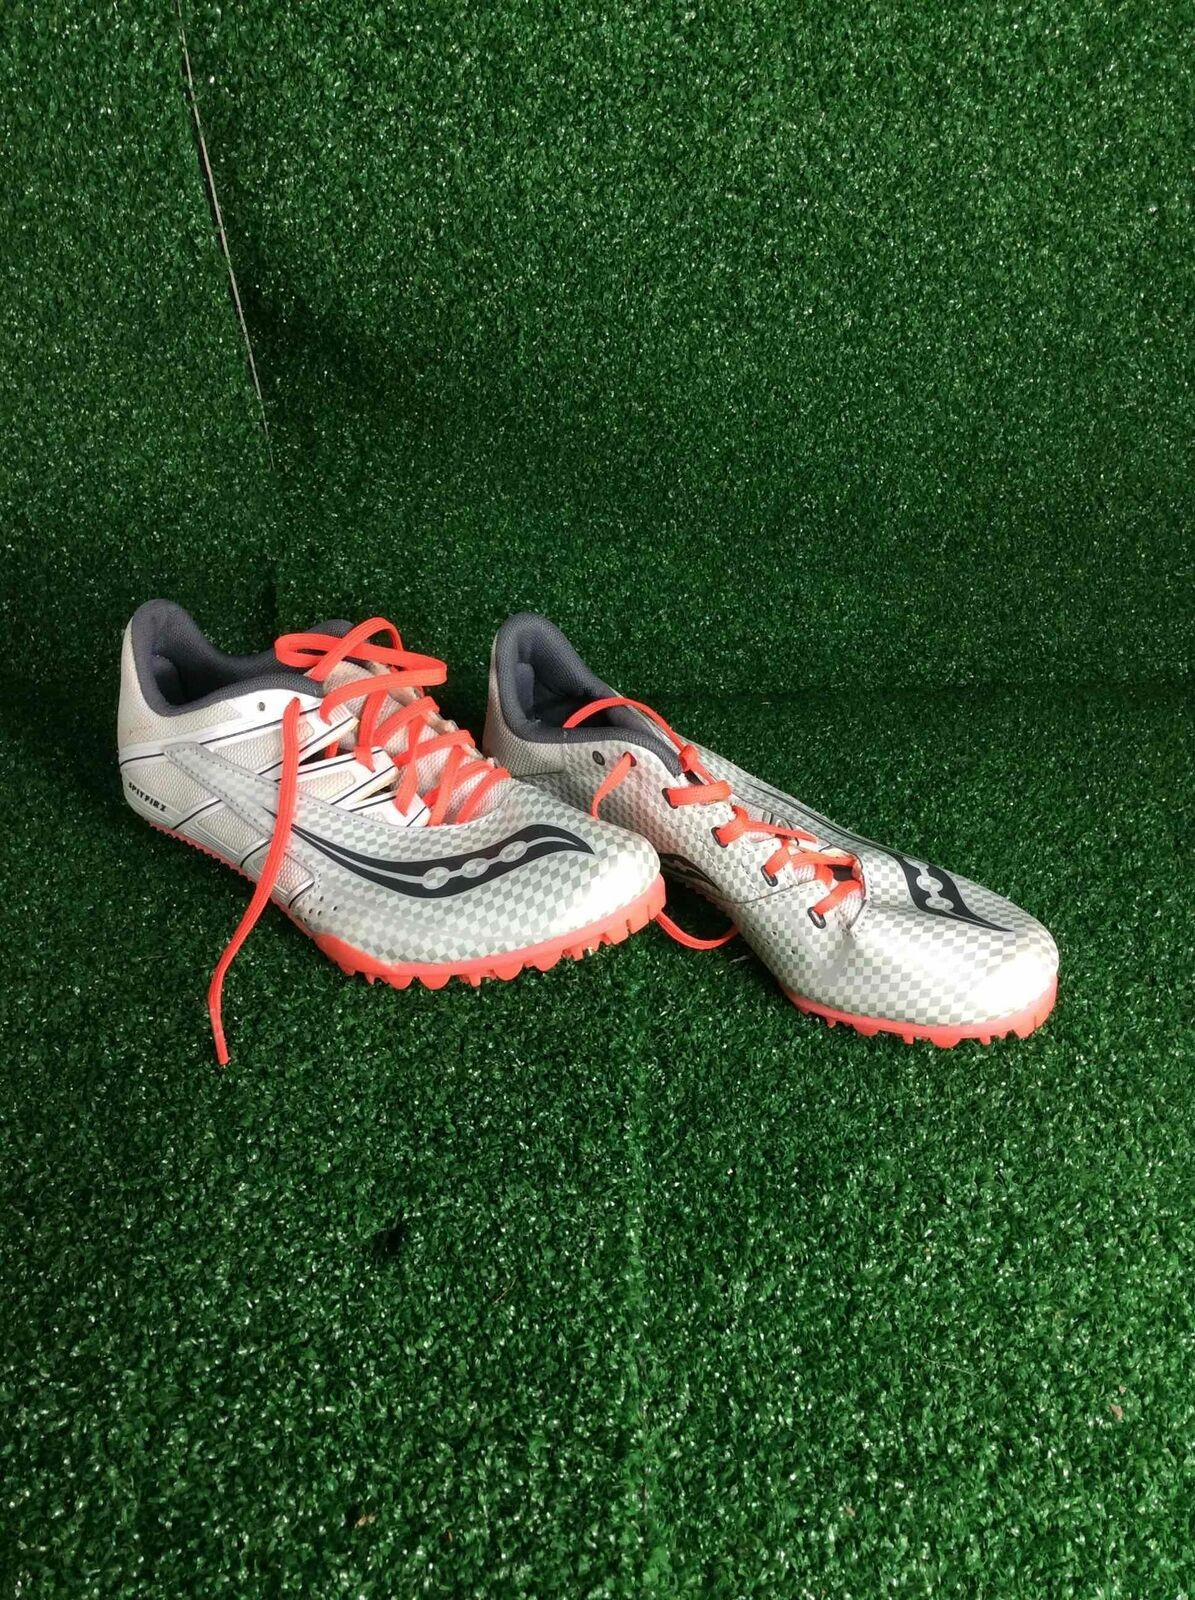 Primary image for Saucony Spitfire 8.0 Size Track & Field Shoes